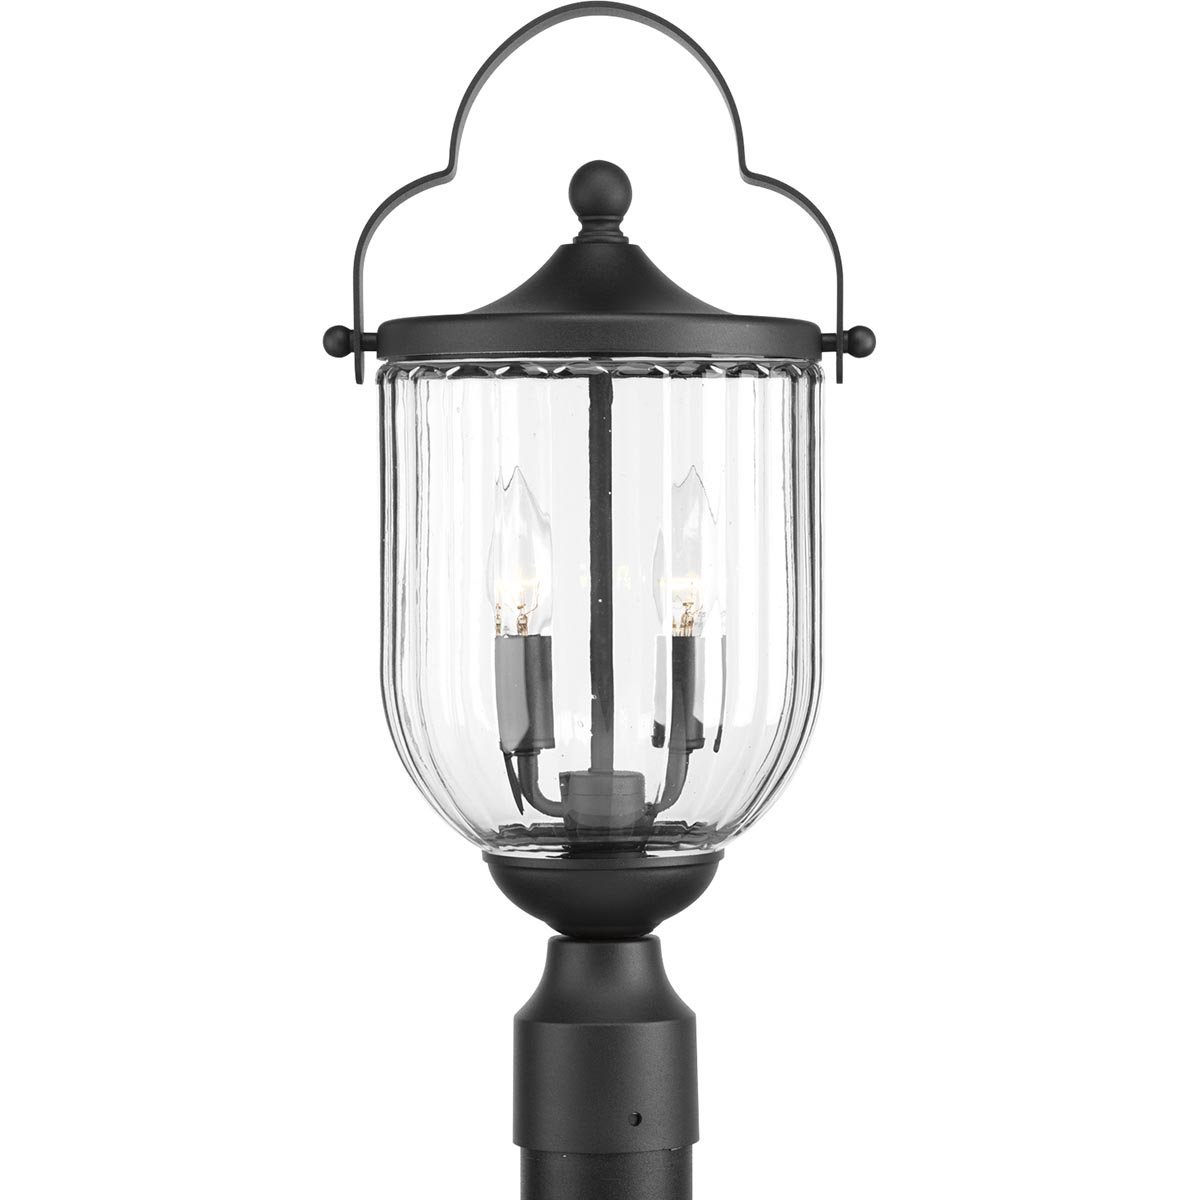 Progress Lighting P540023-031 Mcpherson Post Lantern, Black